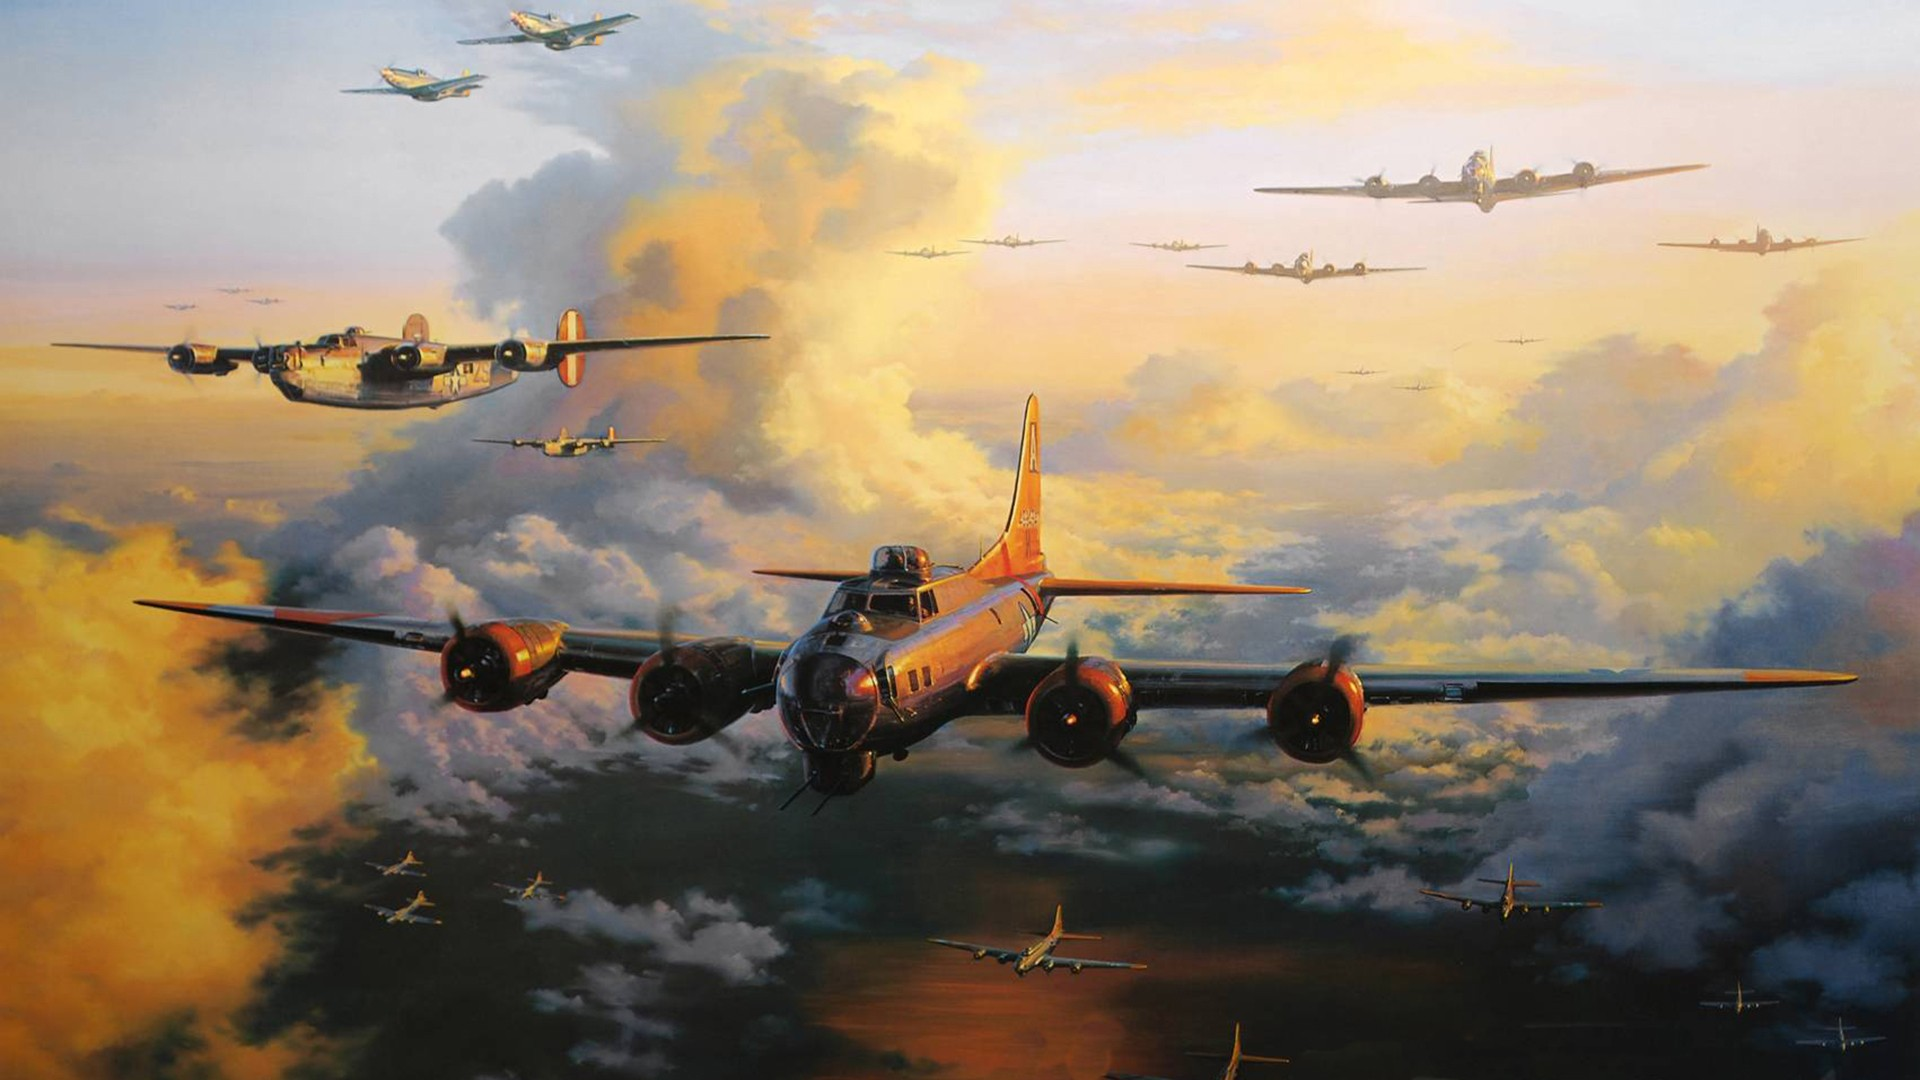 B 17 Flying Fortress Wallpaper B-17 Flying Fortress